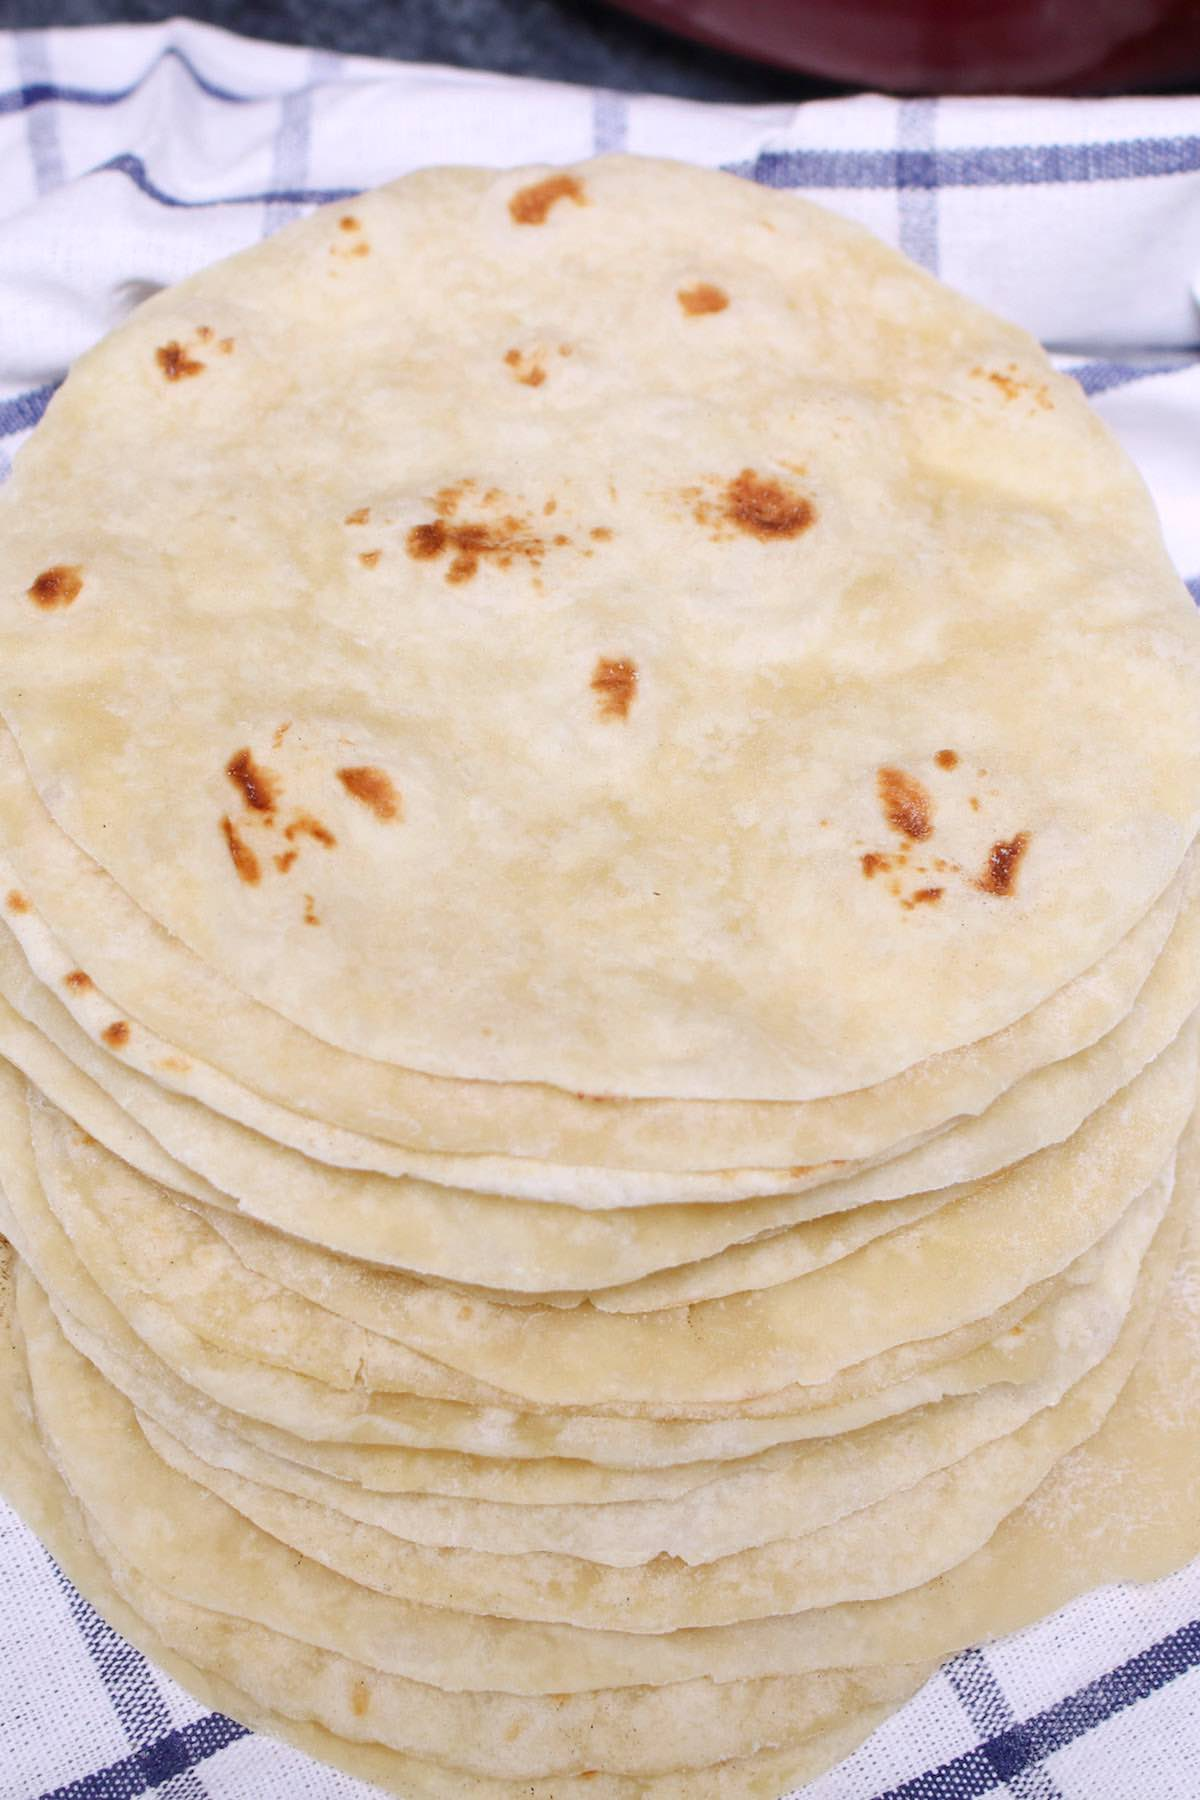 Homemade flour tortillas piled up on a towel